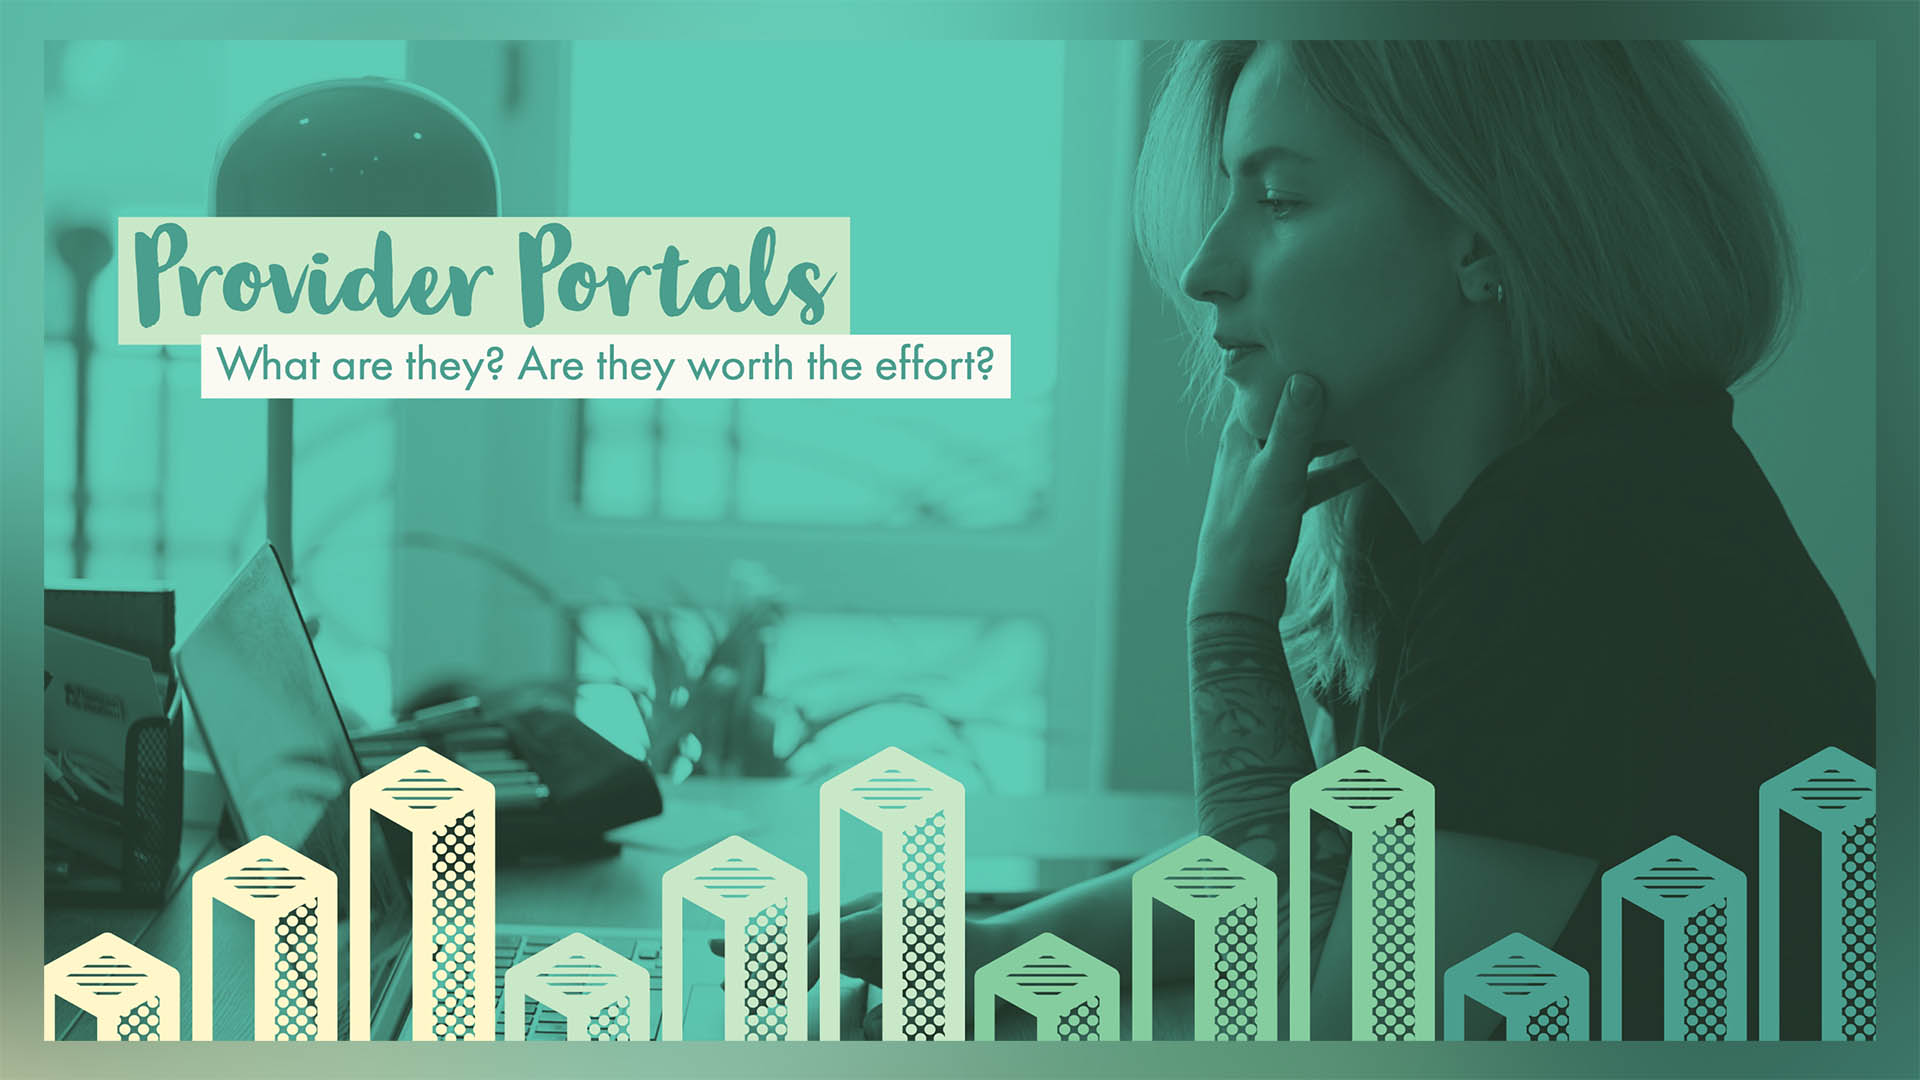 Provider Portals: What are they? Are they worth the effort?